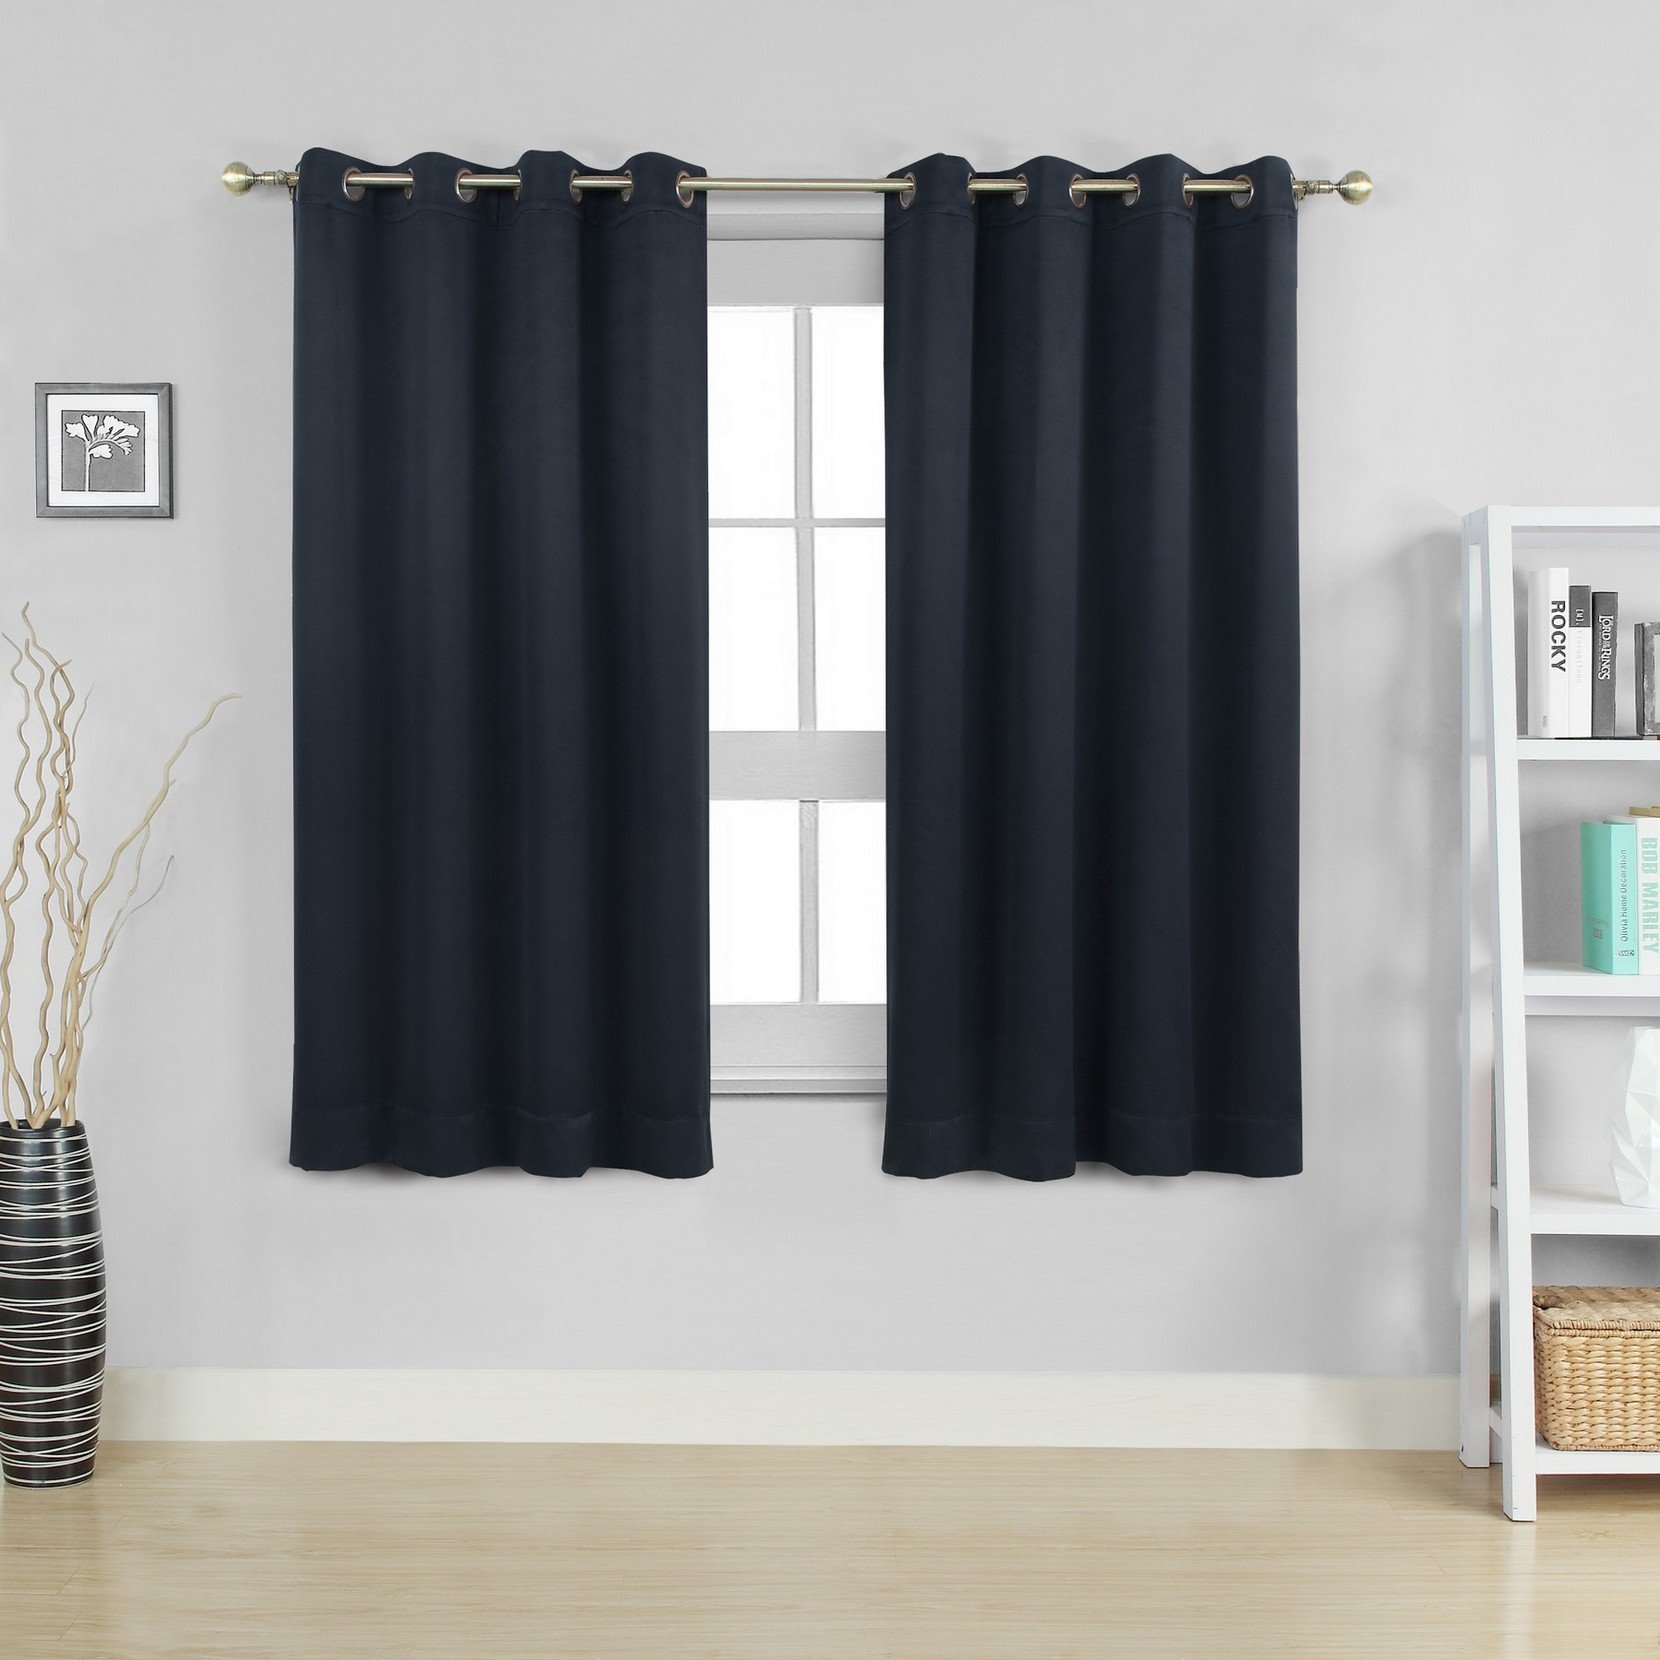 Moonen 99% Blackout Curtain for Bedroom Thermal Insulated Noise Proof Microfiber Heavy Silky Textured Darkening Grommet Top Drapes (2 Panels Set, Black, 52x63 Inches)